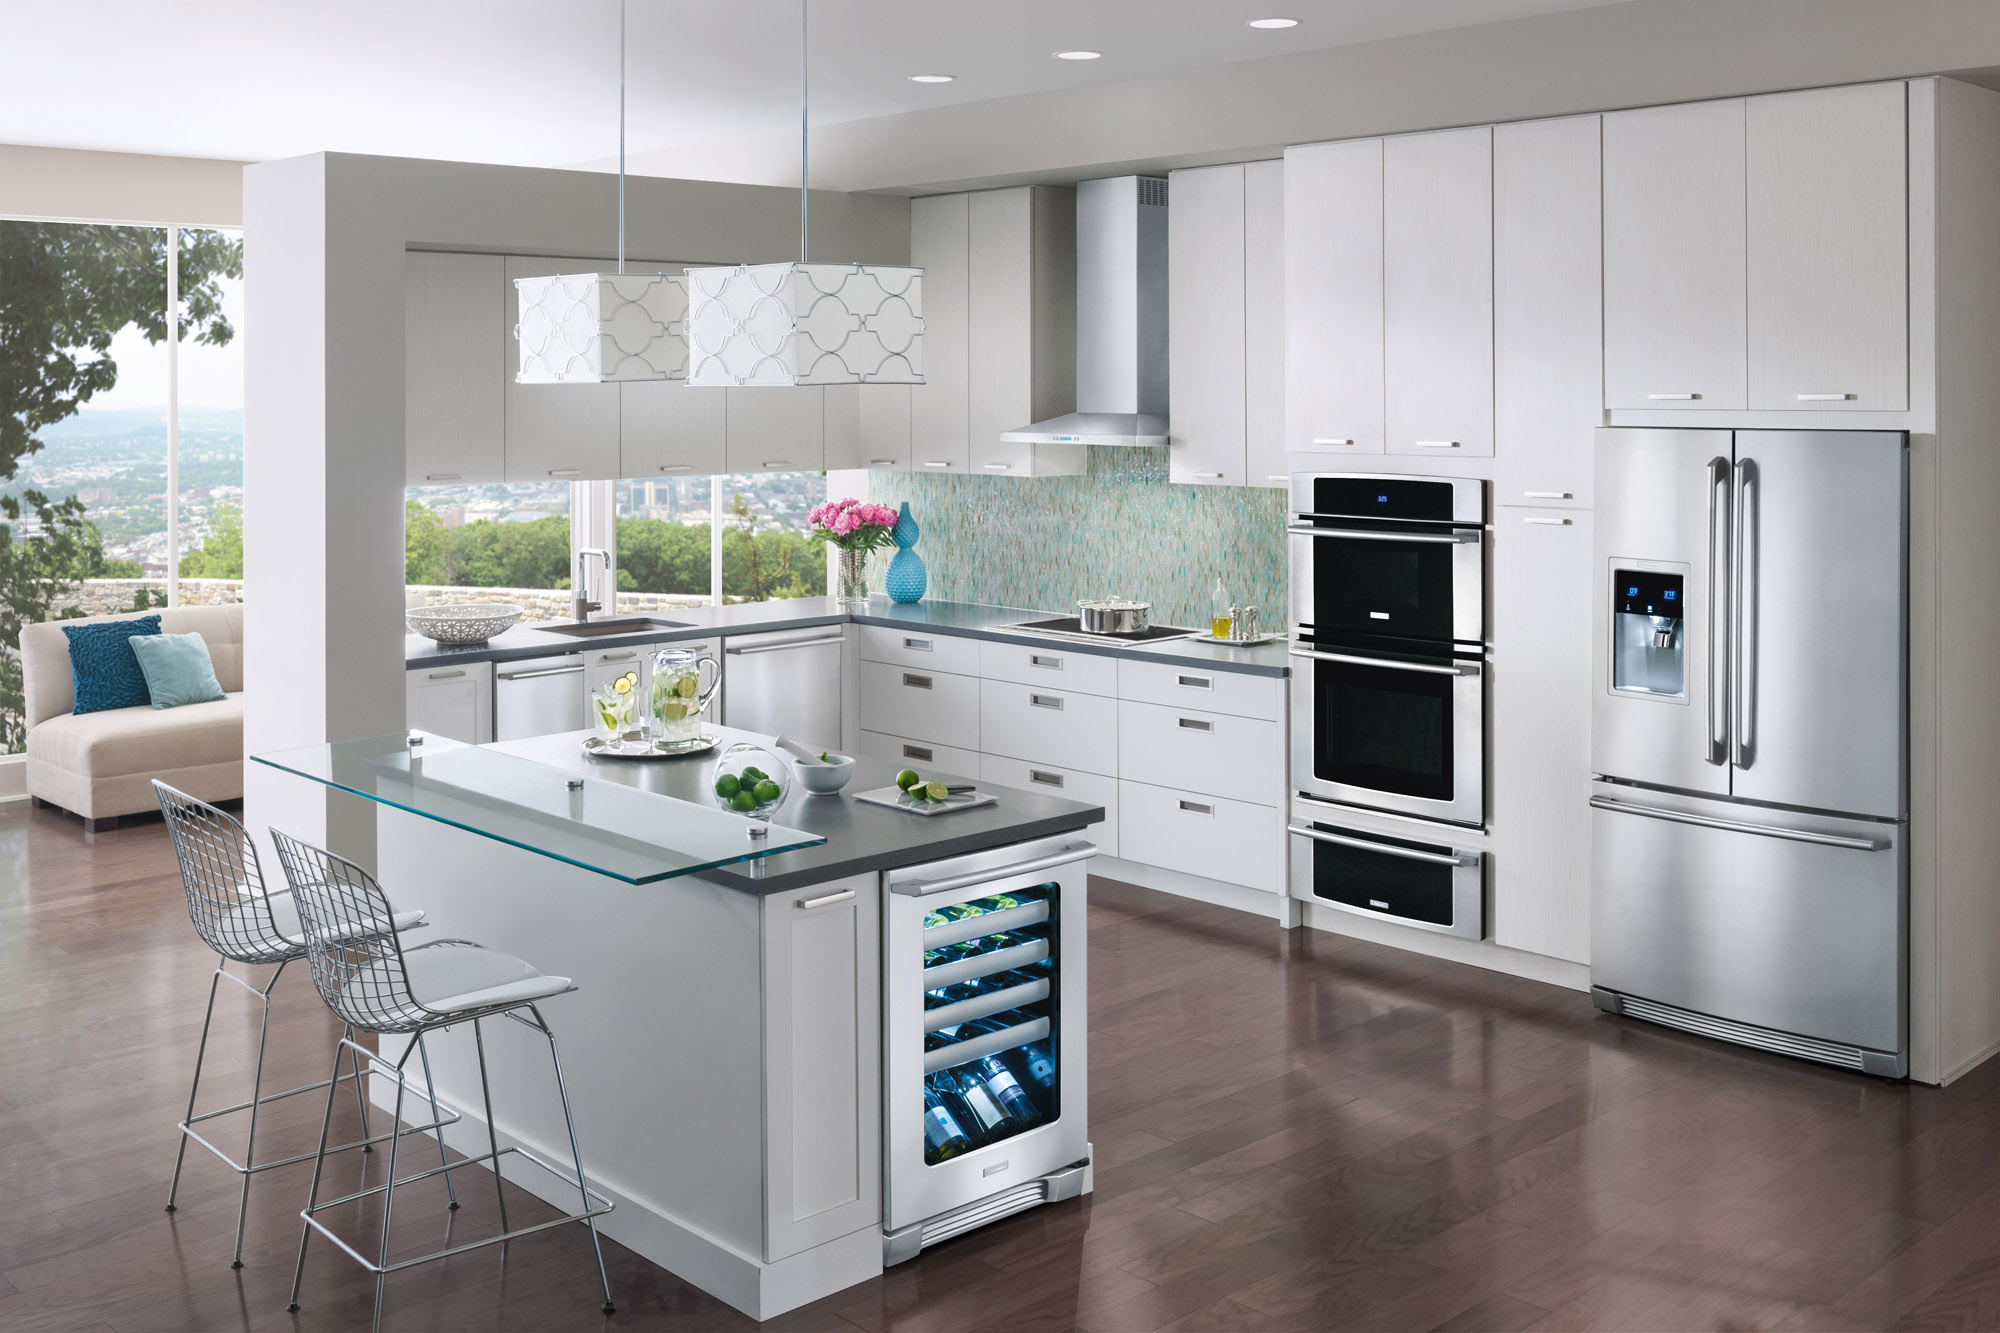 All White Kitchens With White Appliances With So Many Choices What Appliances Should You Buy